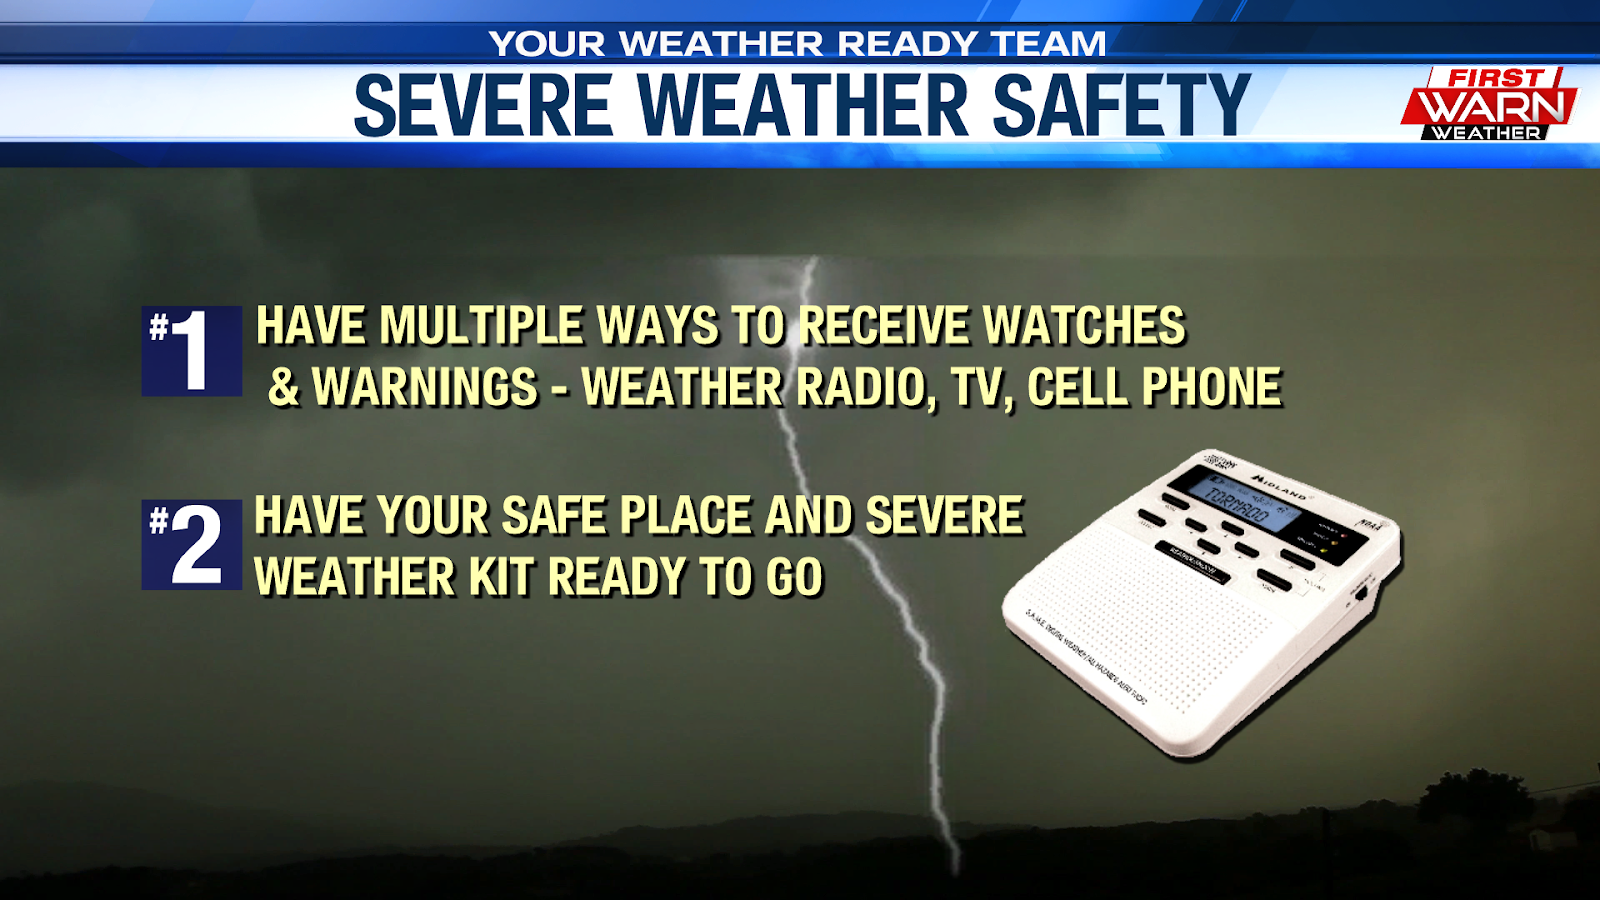 This Would Be A Great Time To Make Sure That Your Severe Weather Plan Is Set And Ready Go Also You Have Multiple Ways Receive Watches